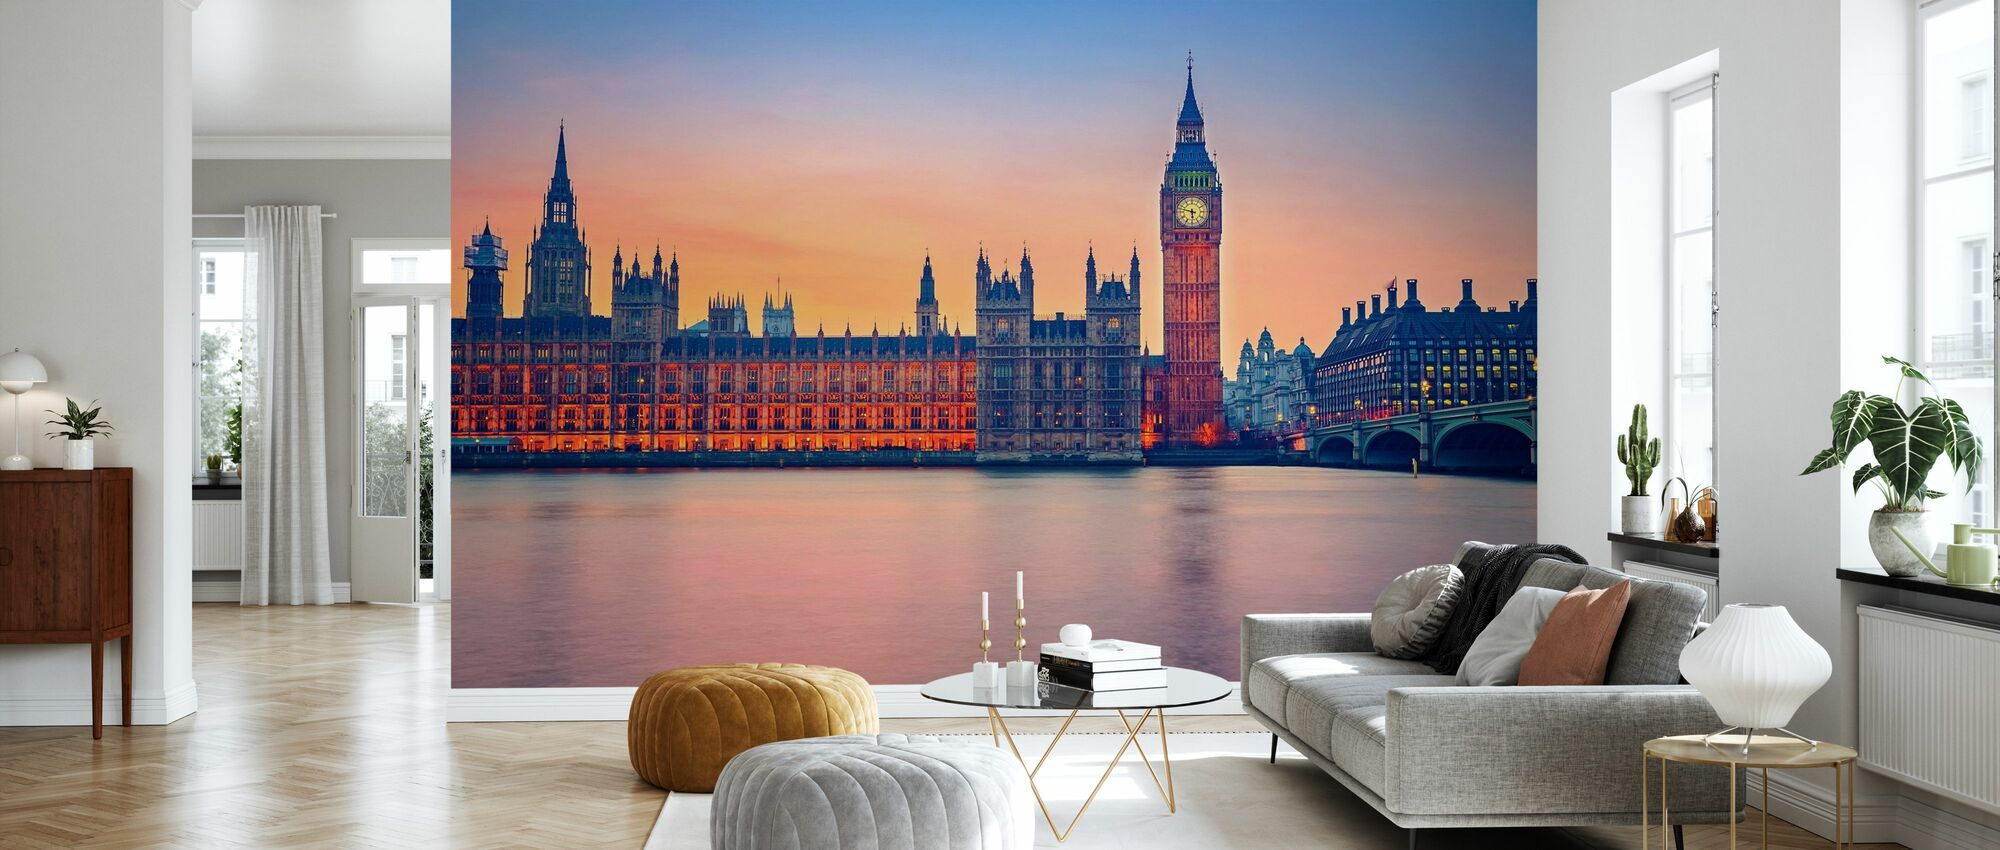 Big Ben and Houses of Parliament - Wallpaper - Living Room